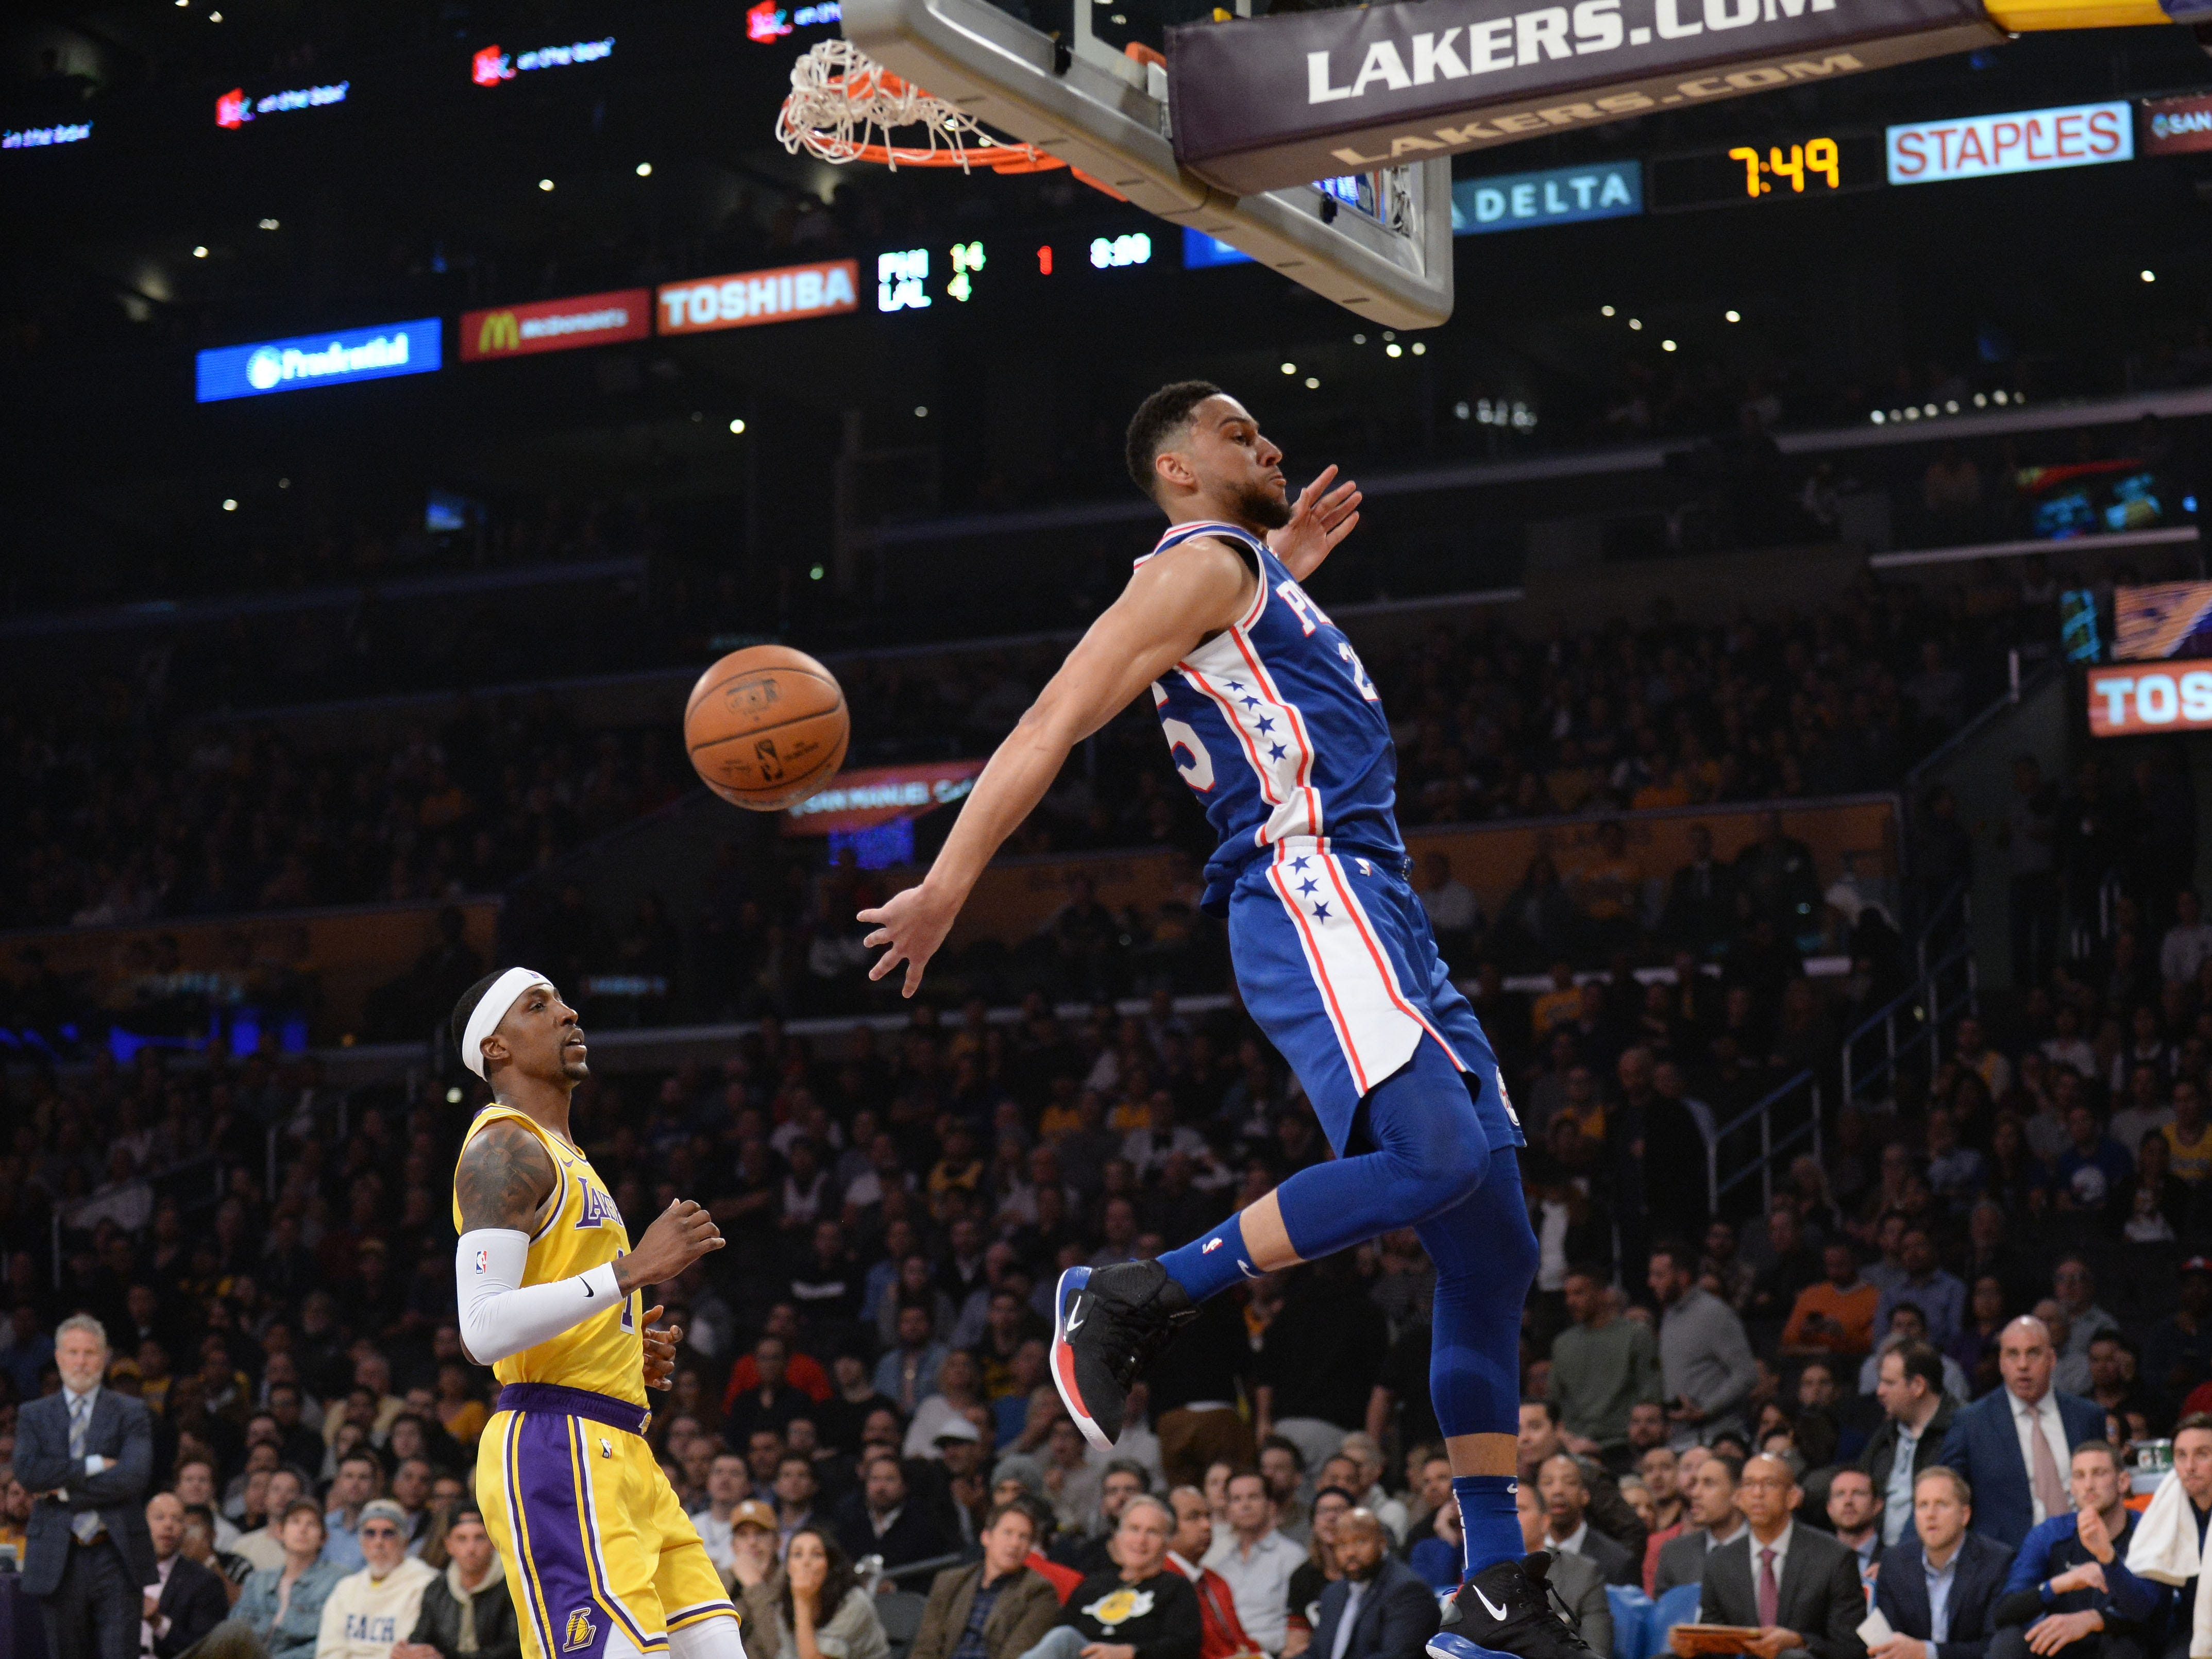 Jan. 29: The Philadelphia 76ers' Ben Simmons dunks against the Los Angeles Lakers.